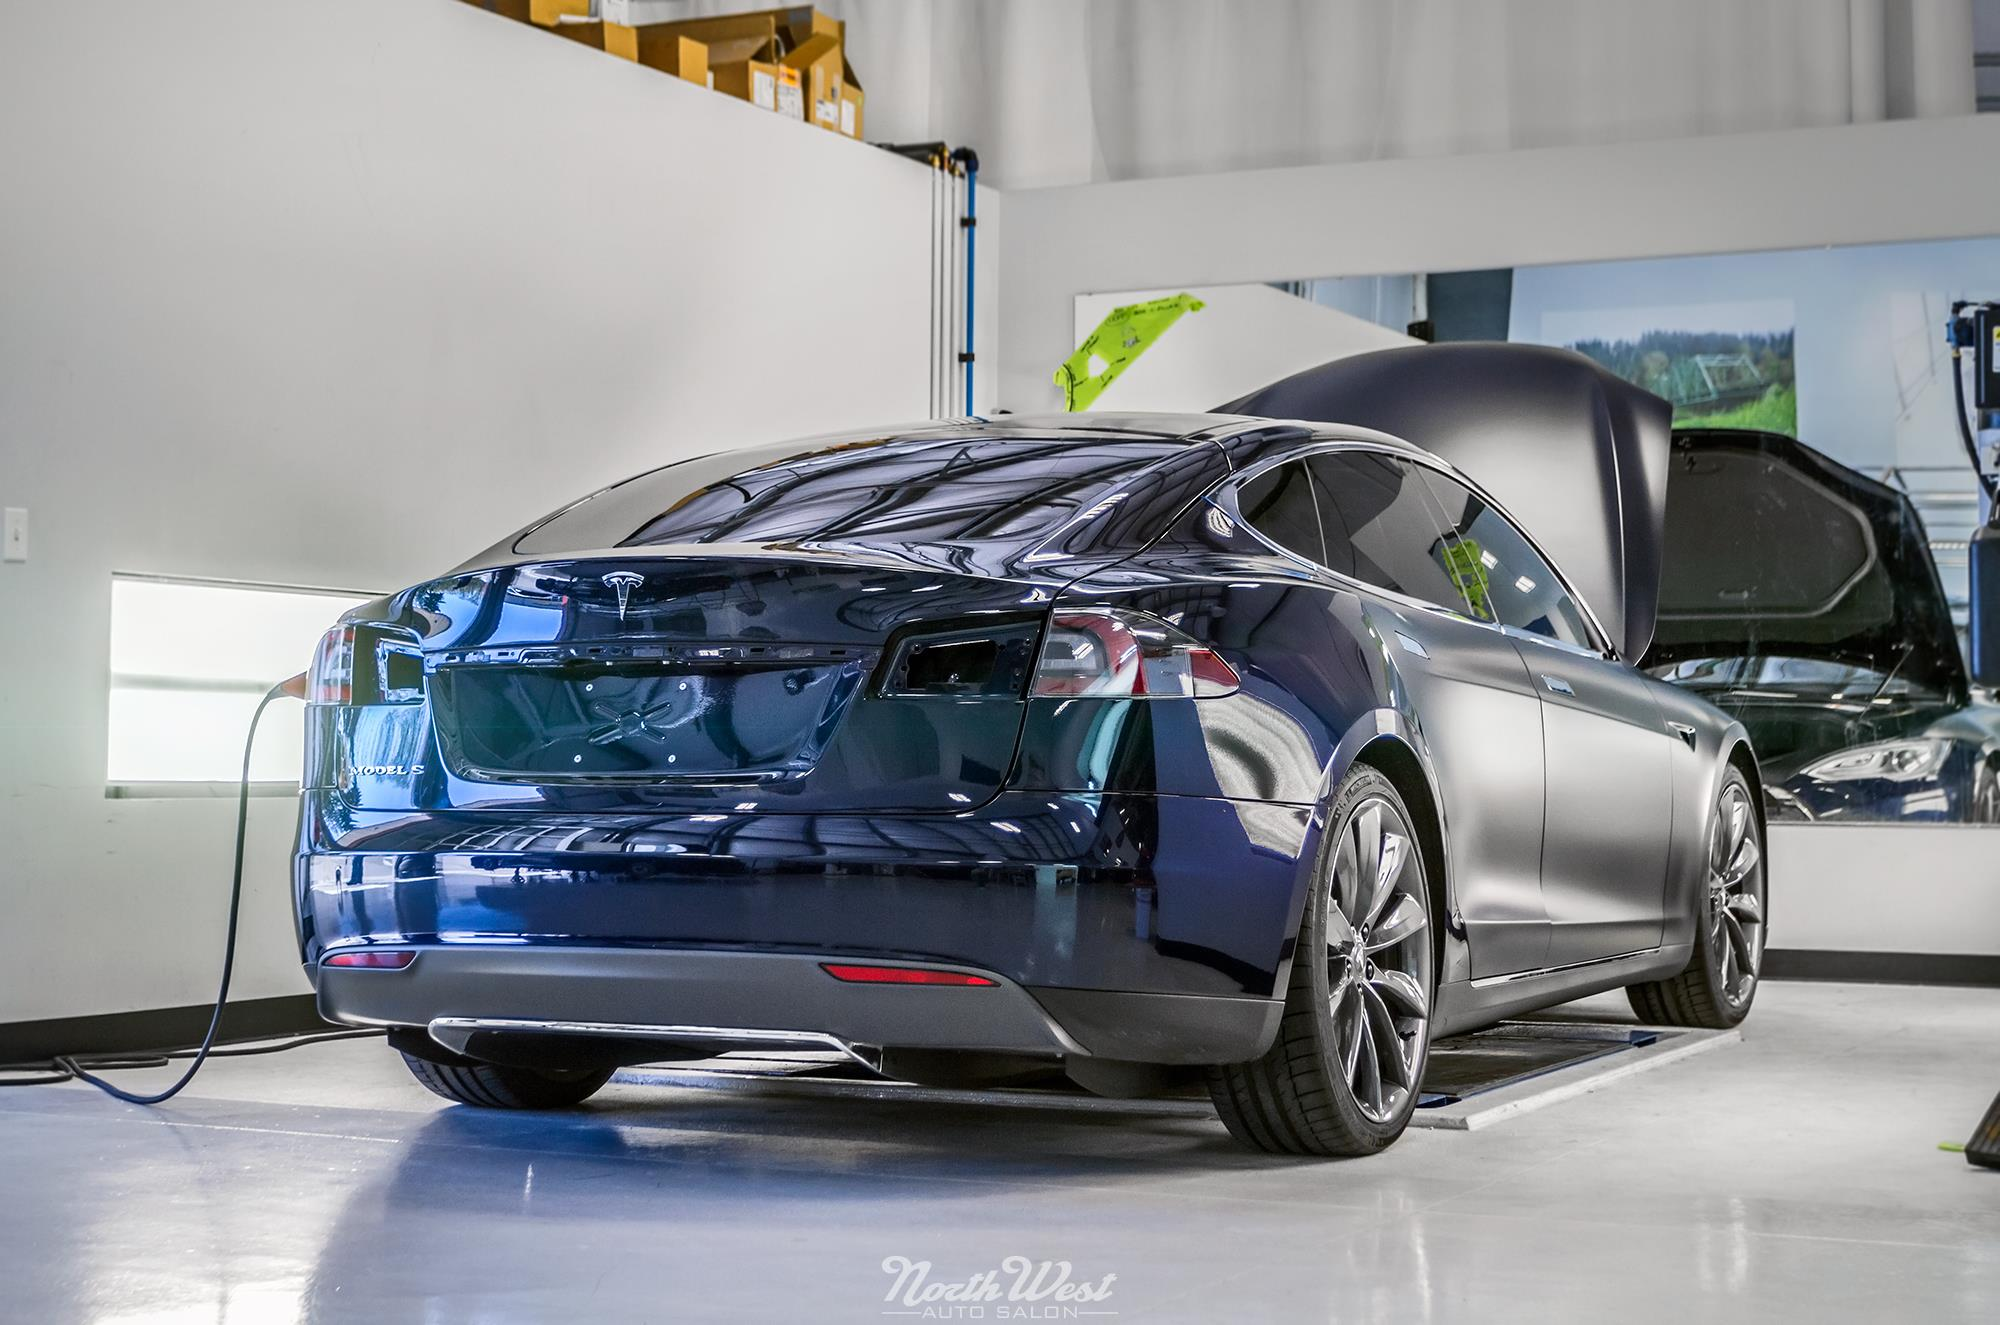 tesla-model-s-signature-wrapped-satin-xpel-stealth-paint-protection-clear-bra-installing.jpg